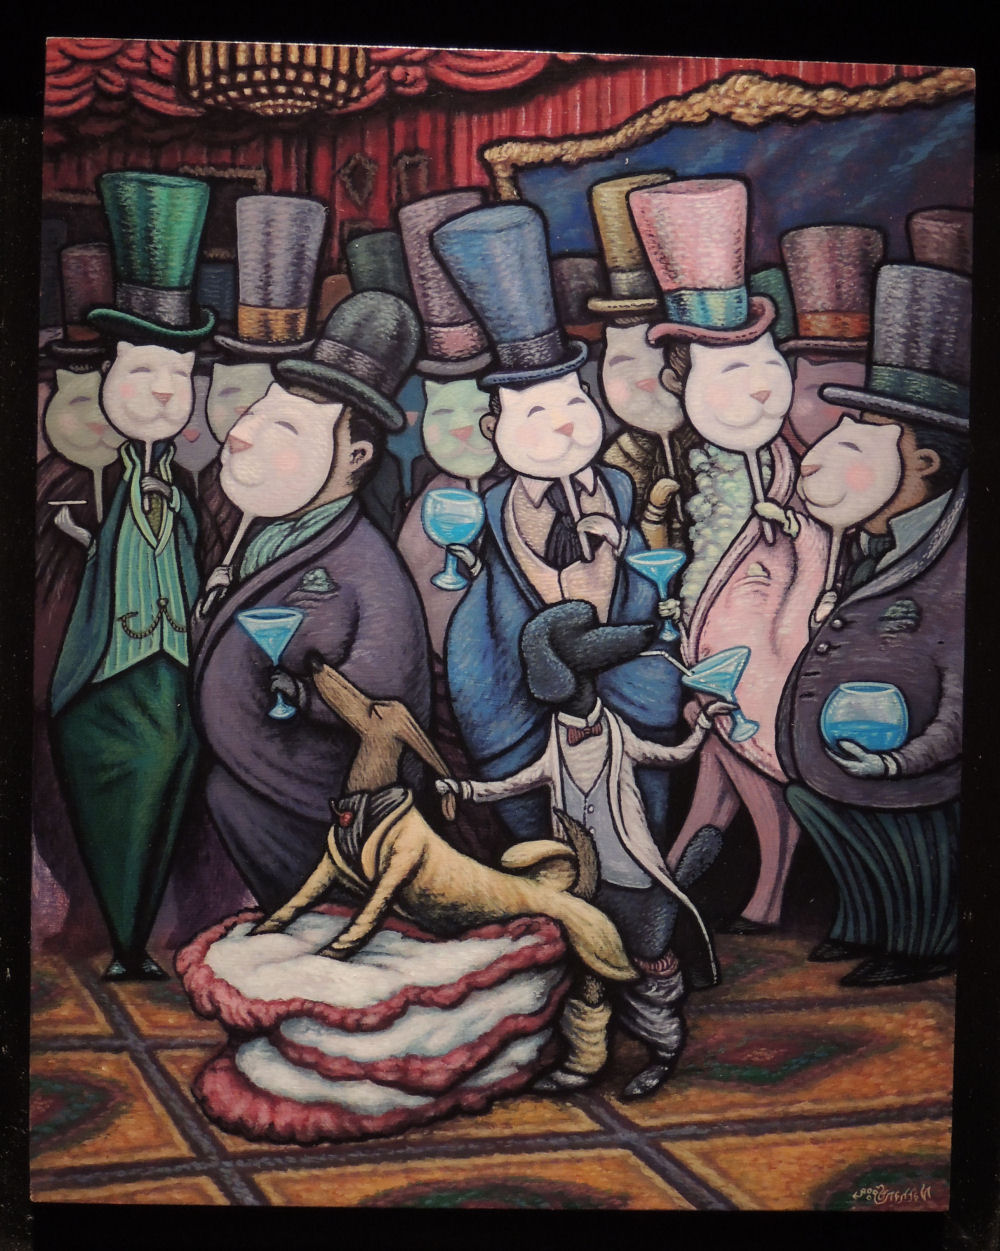 nathan-spoor-jackson-finds-paris-very-much-to-his-liking-acrylic-panel-risque-2013